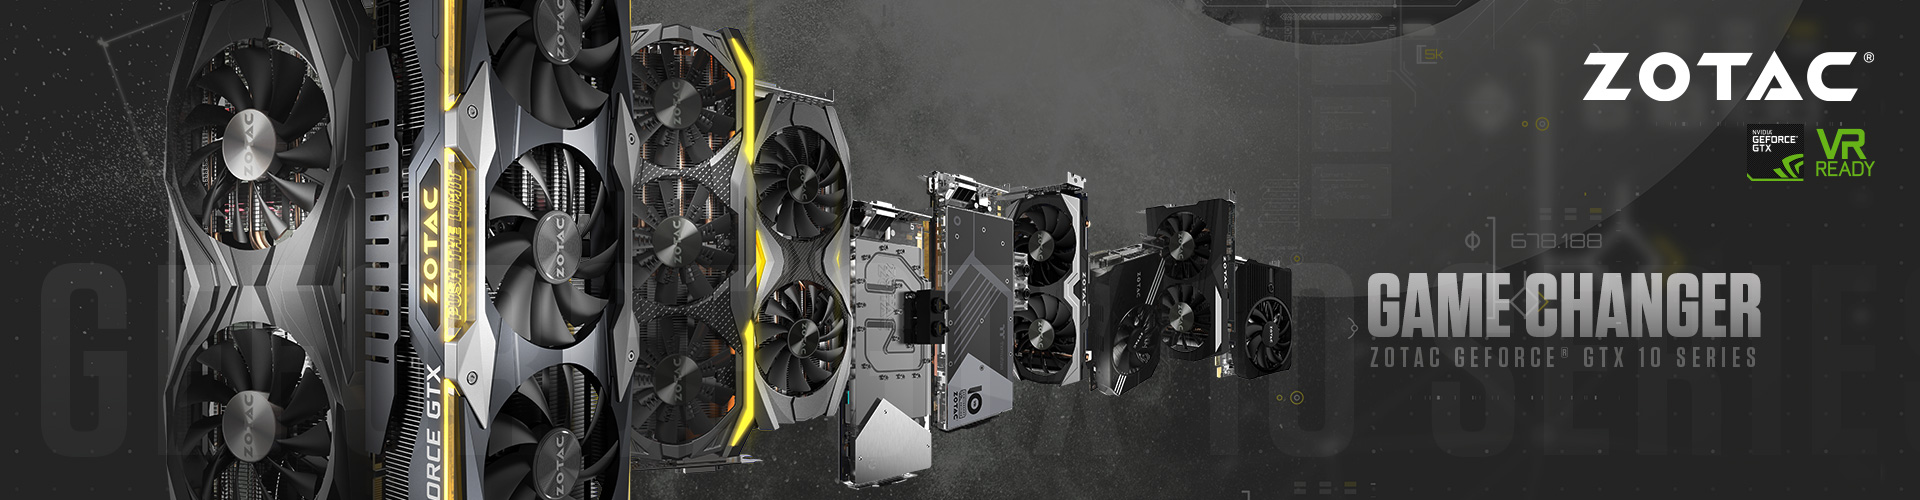 GTX10SERIES-web-banner_1920x500_WorkingFile